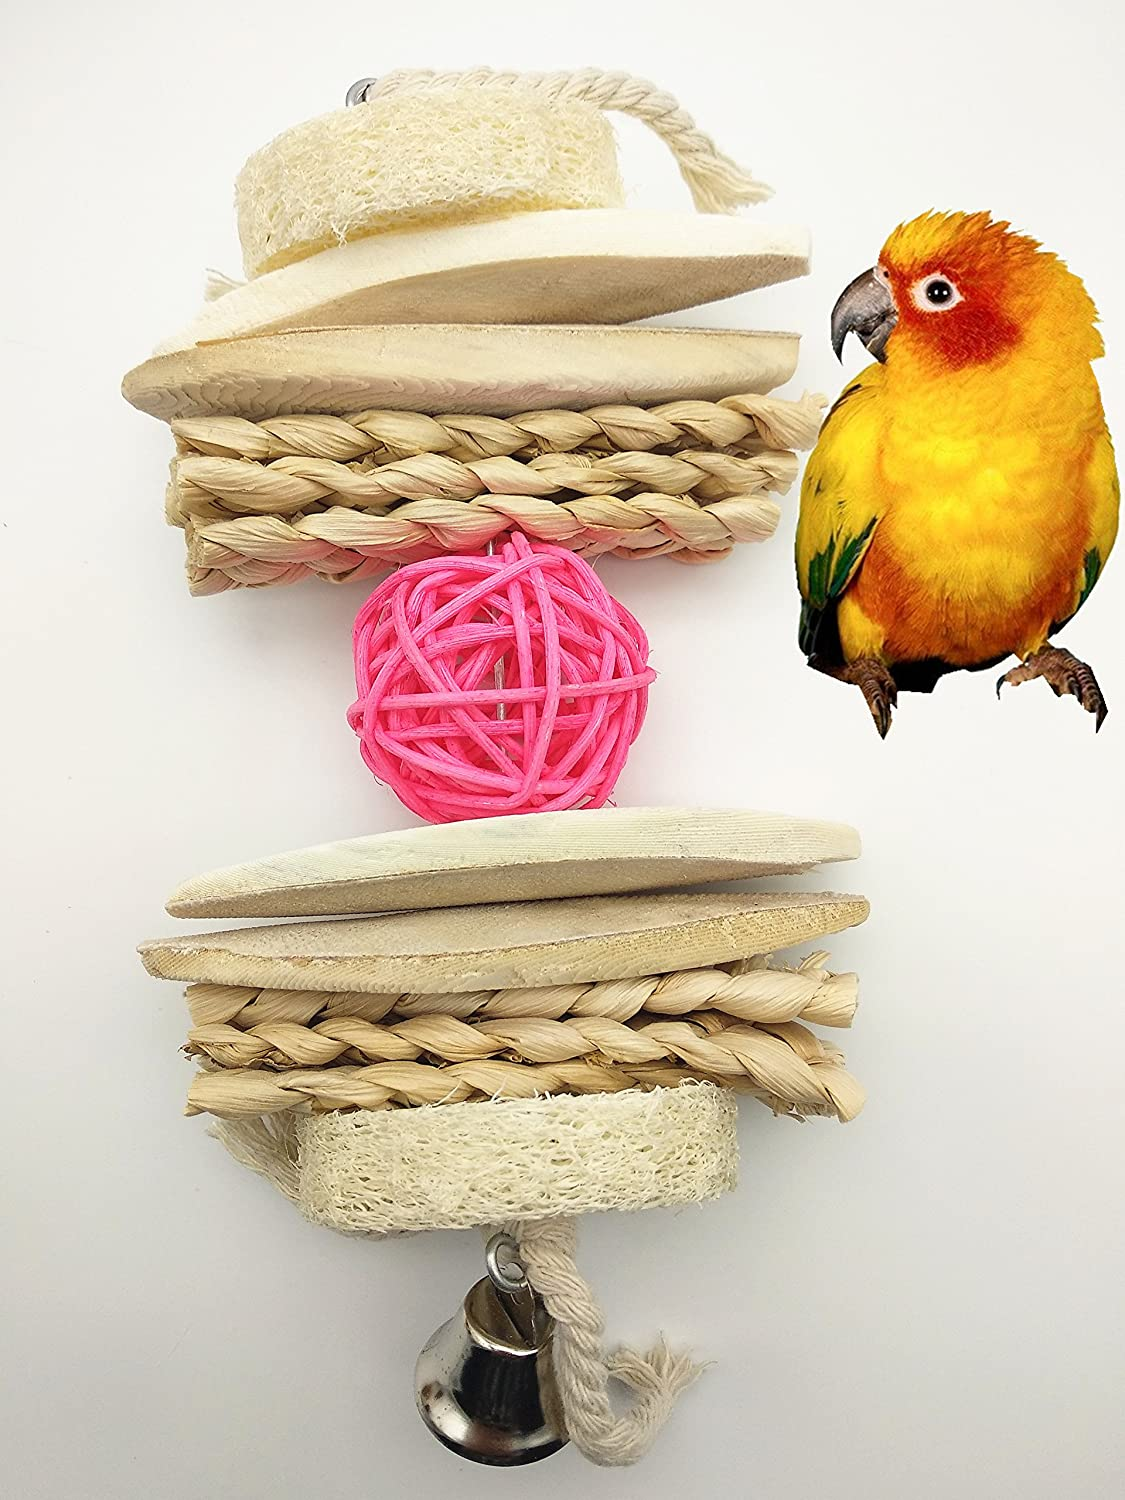 Japan's largest assortment Hypeety Bird Parrot Cuttlebone High quality new Chew Rattan Toy Colorful